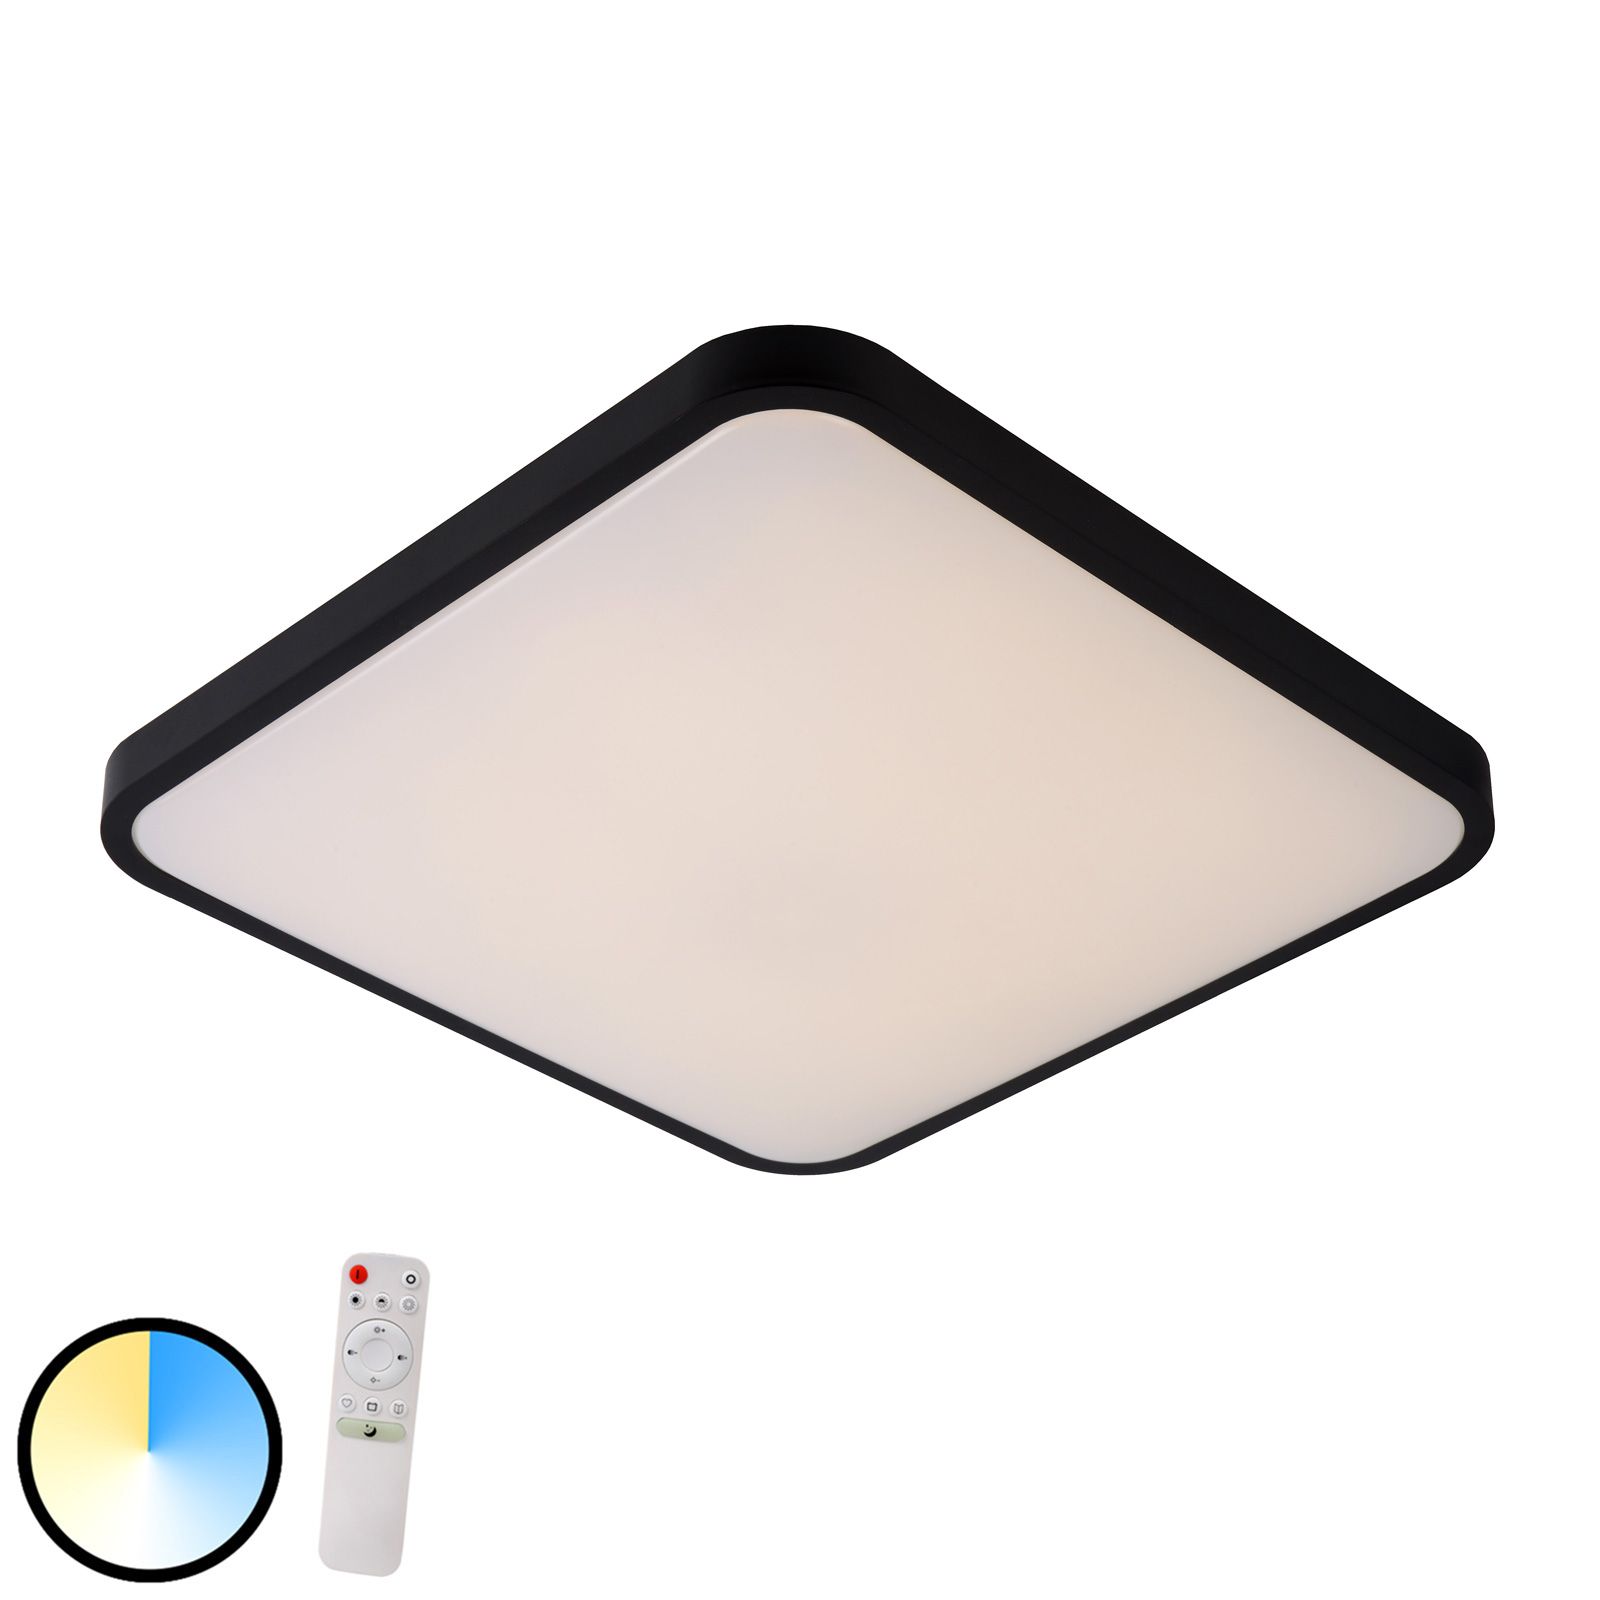 Plafonnier LED Polaris 43,4 cm x 43,4 cm